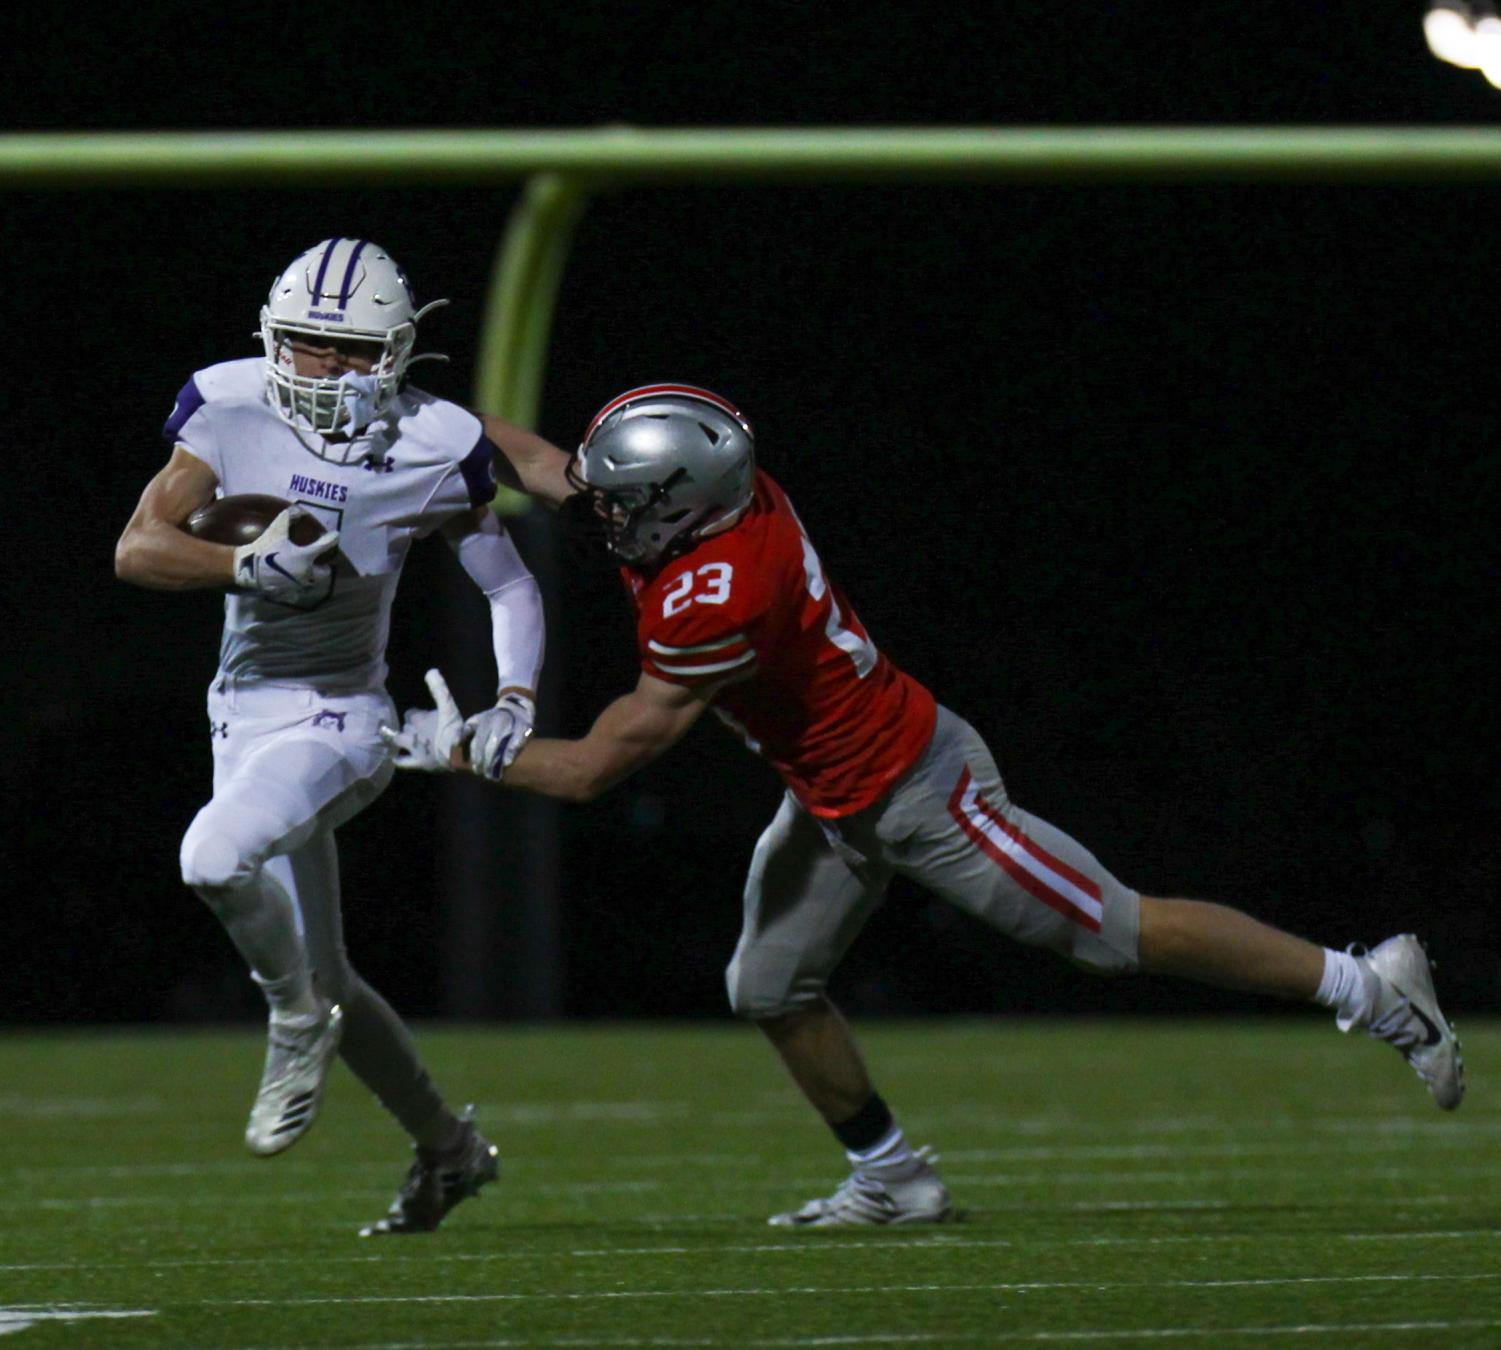 Junior Nick Cusick runs the ball in the varsity football game against Blue Valley West, Oct. 23. (Photo by Grace Davis)